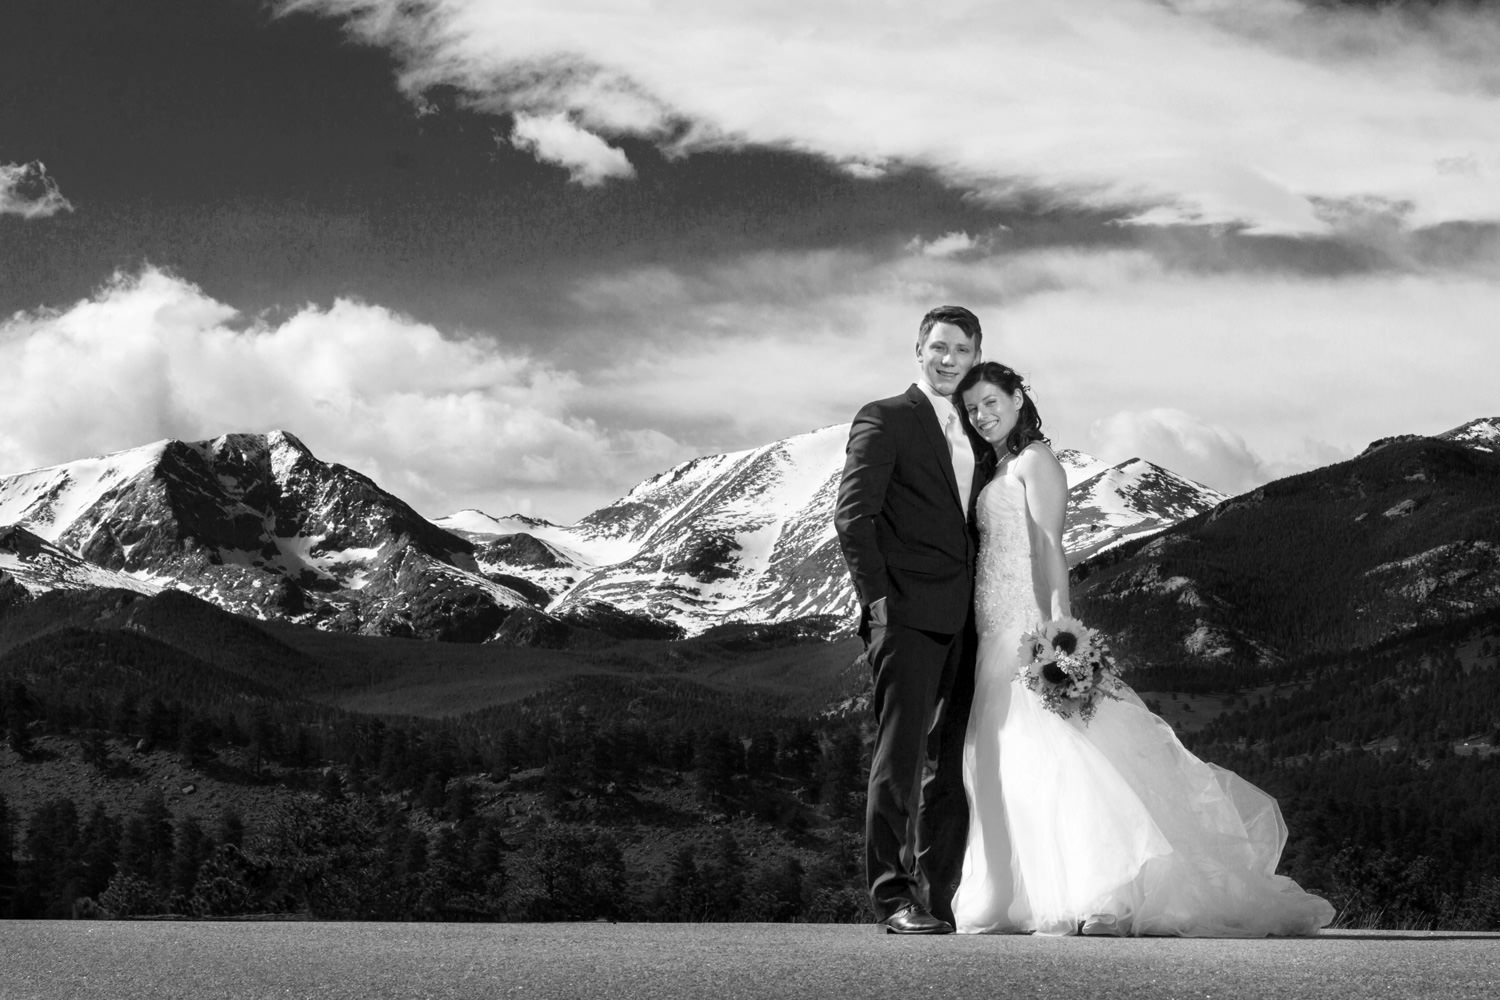 ymca-of-the-rockies-wedding-estes-park-037.jpg